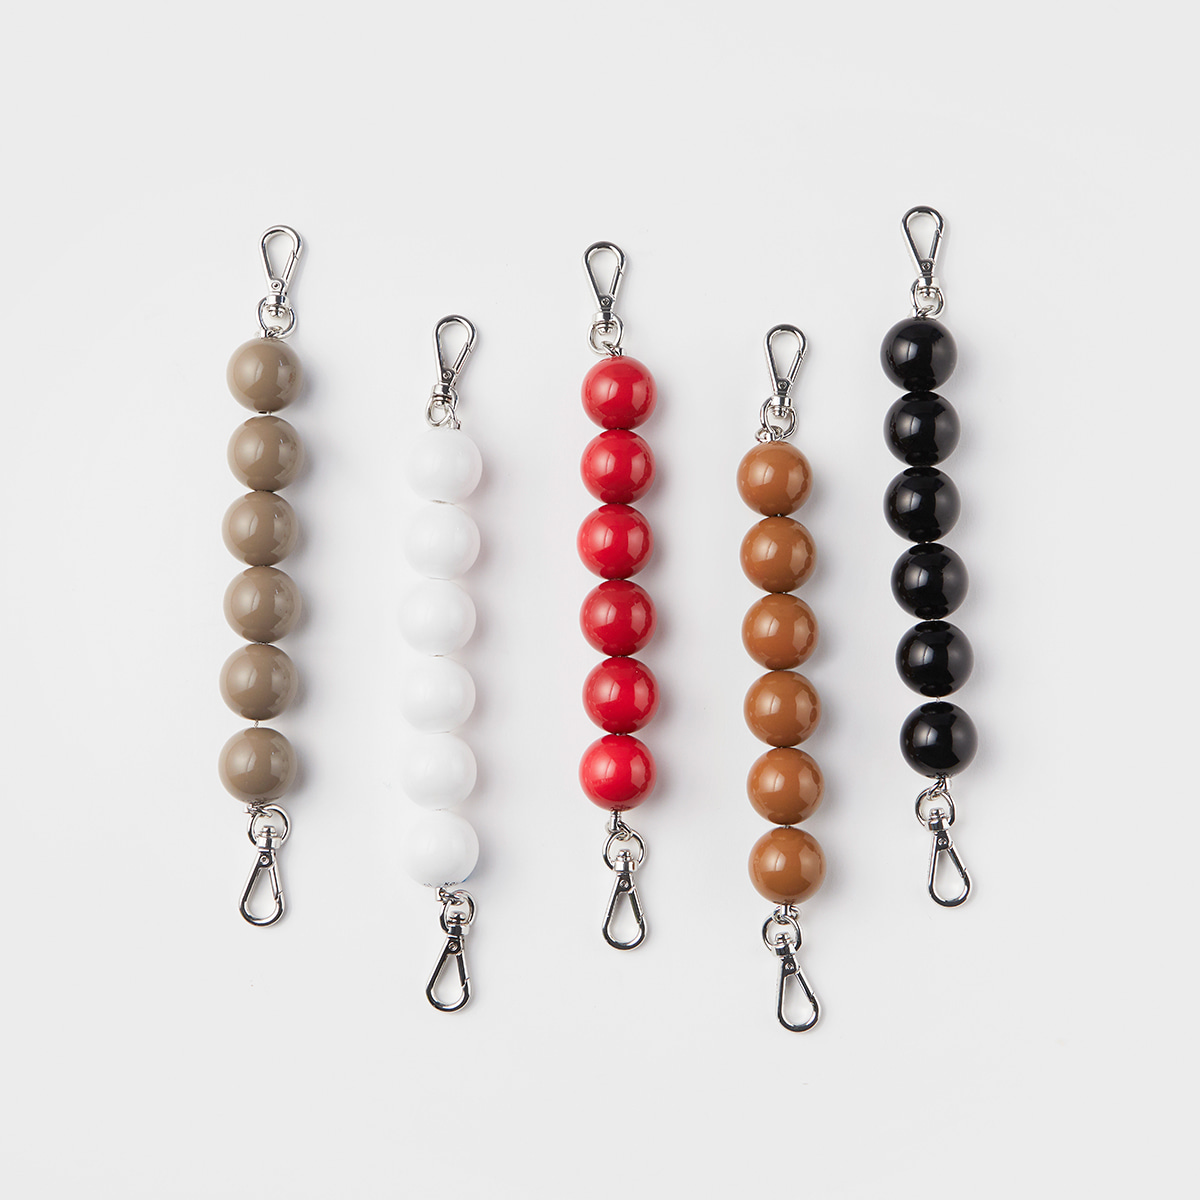 [강민경 / 제시카 착용] Beads Top Handle (All colors)